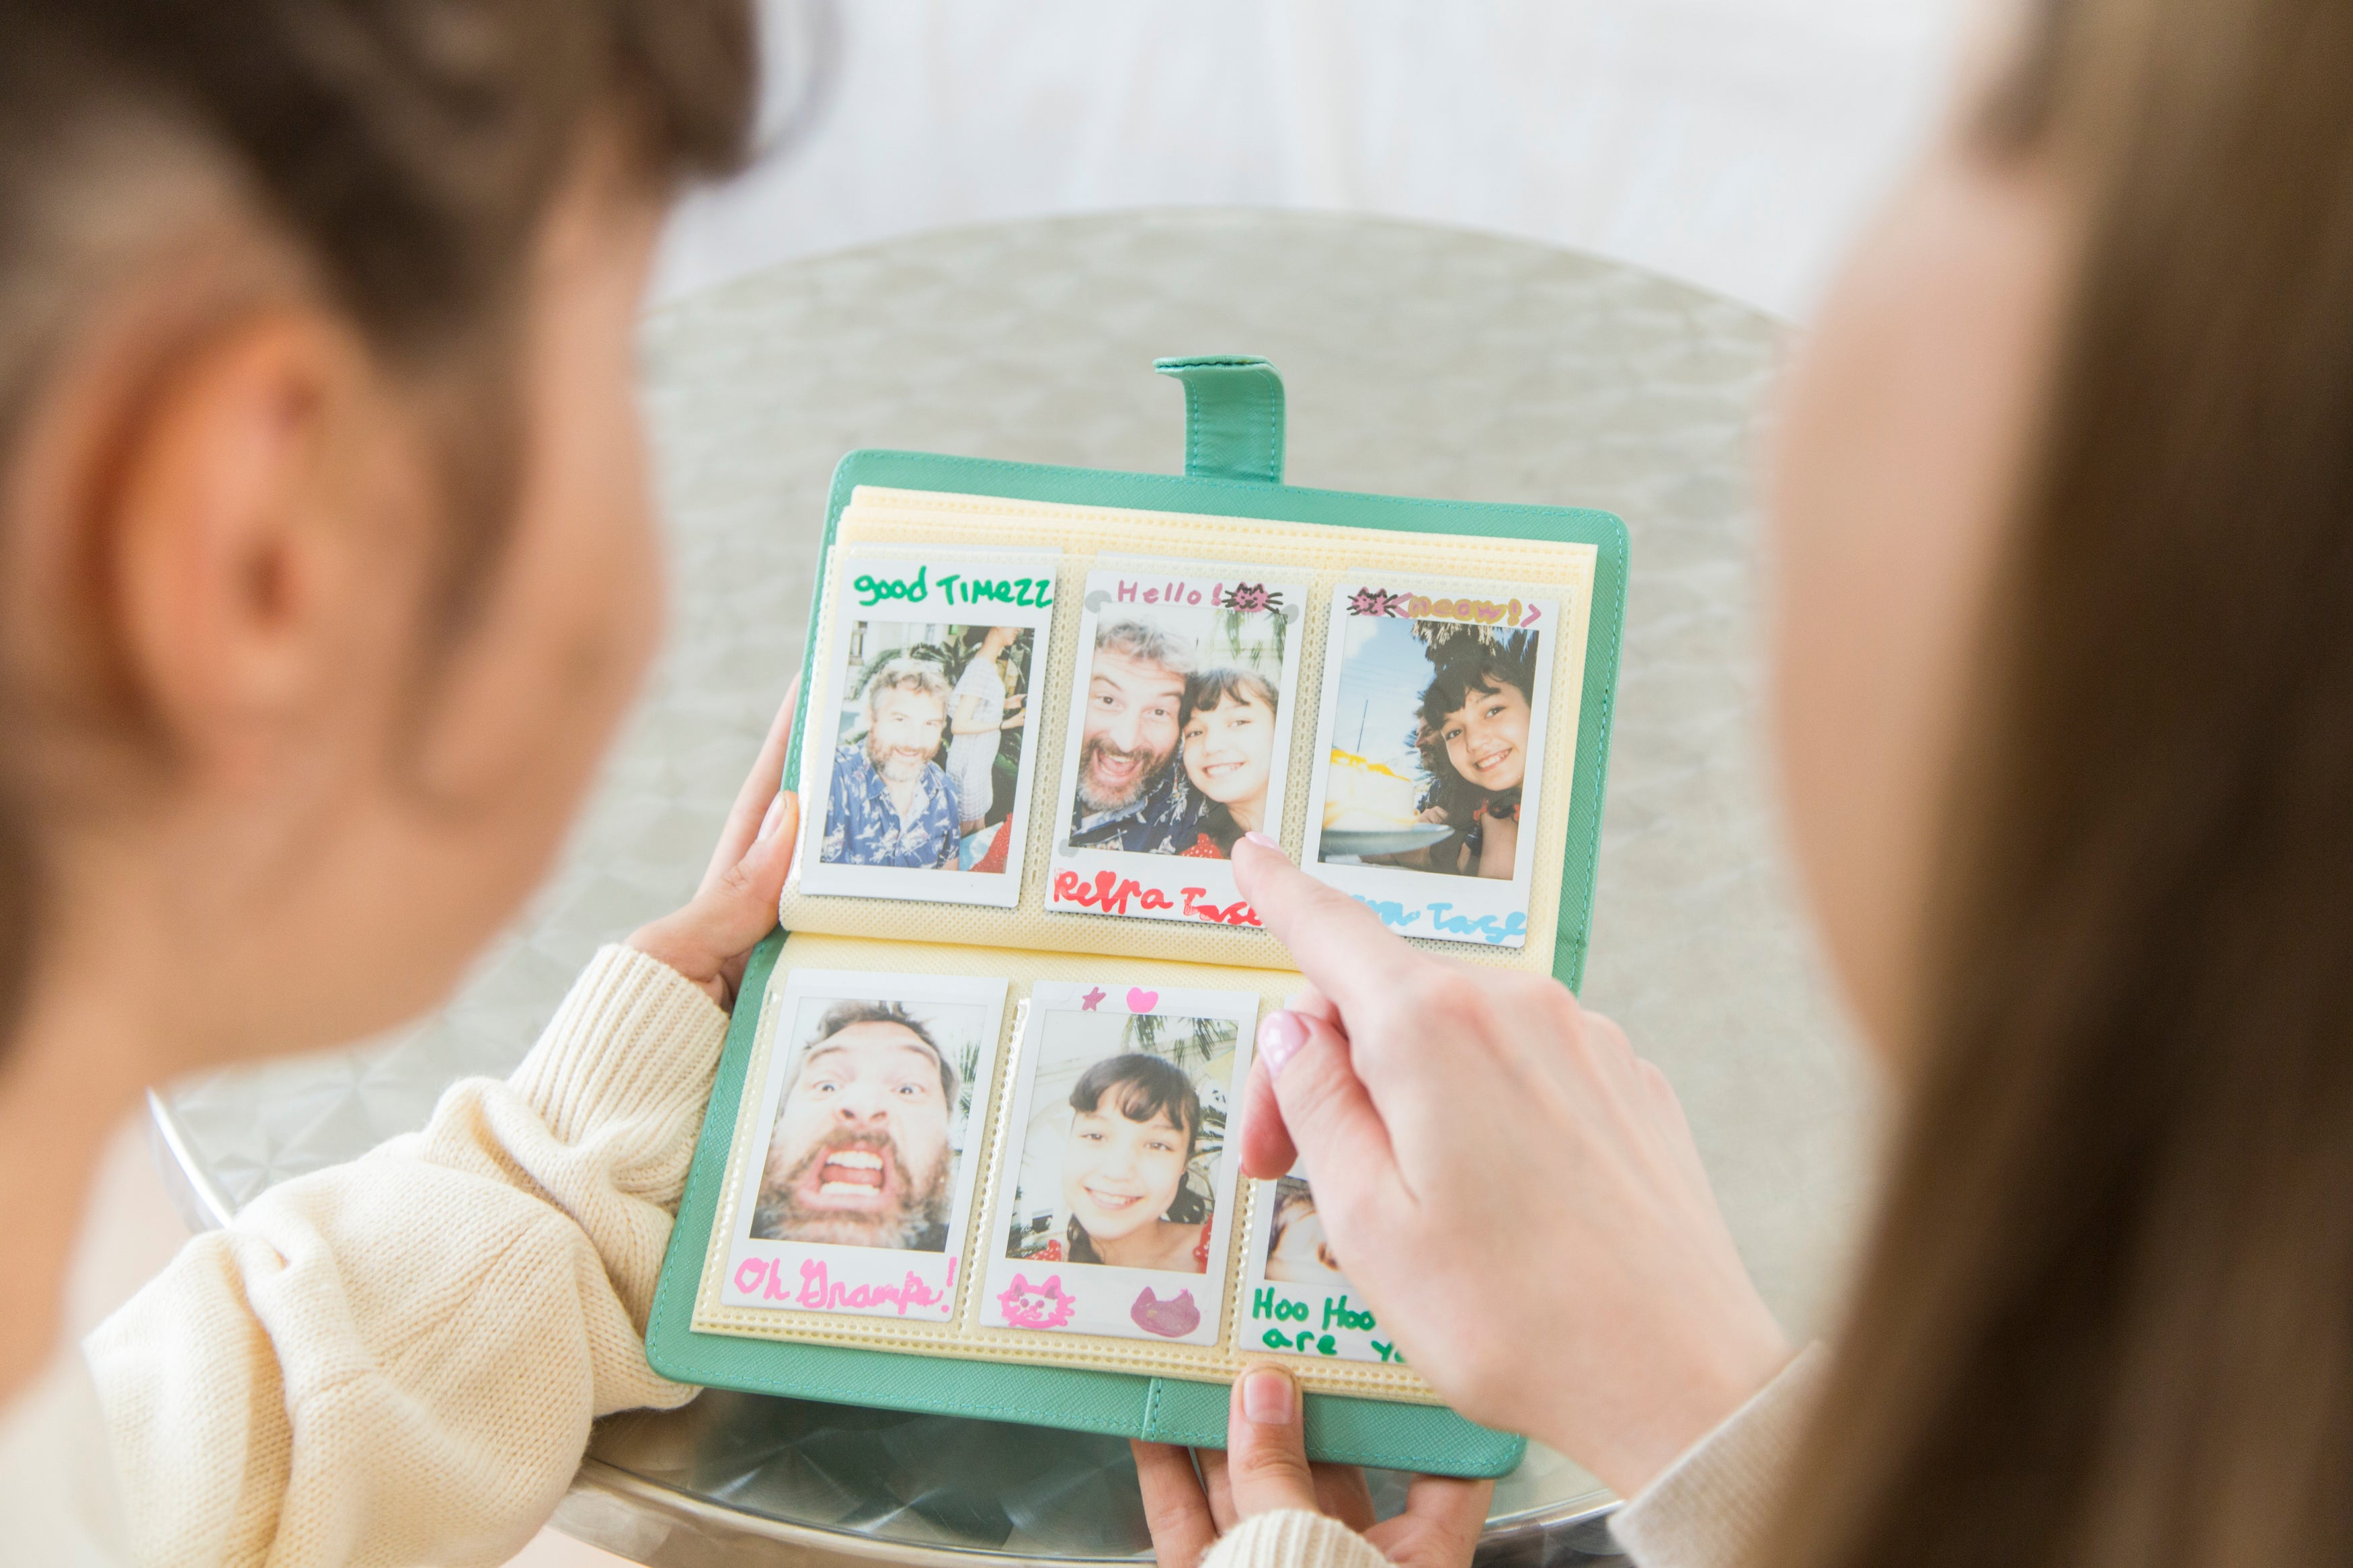 instax mini prints photo album